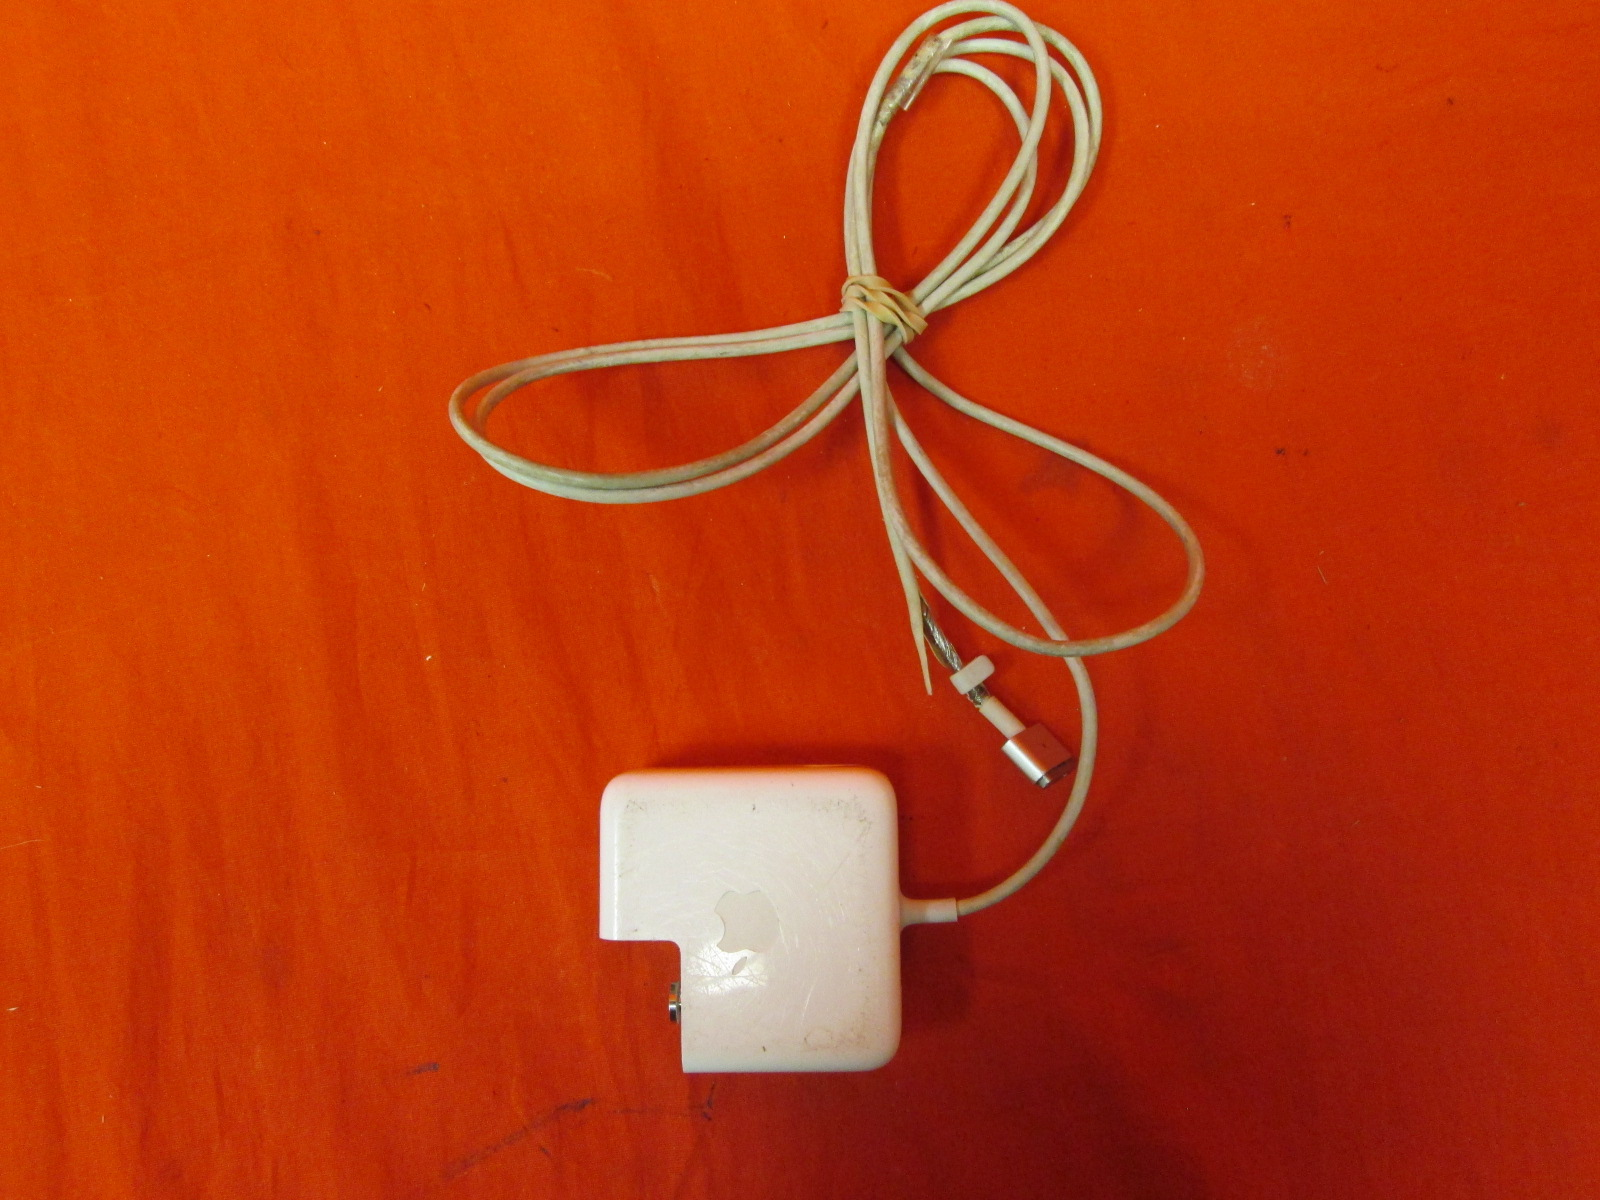 Broken Apple 45W Magsafe 2 Power Adapter For Macbook Air